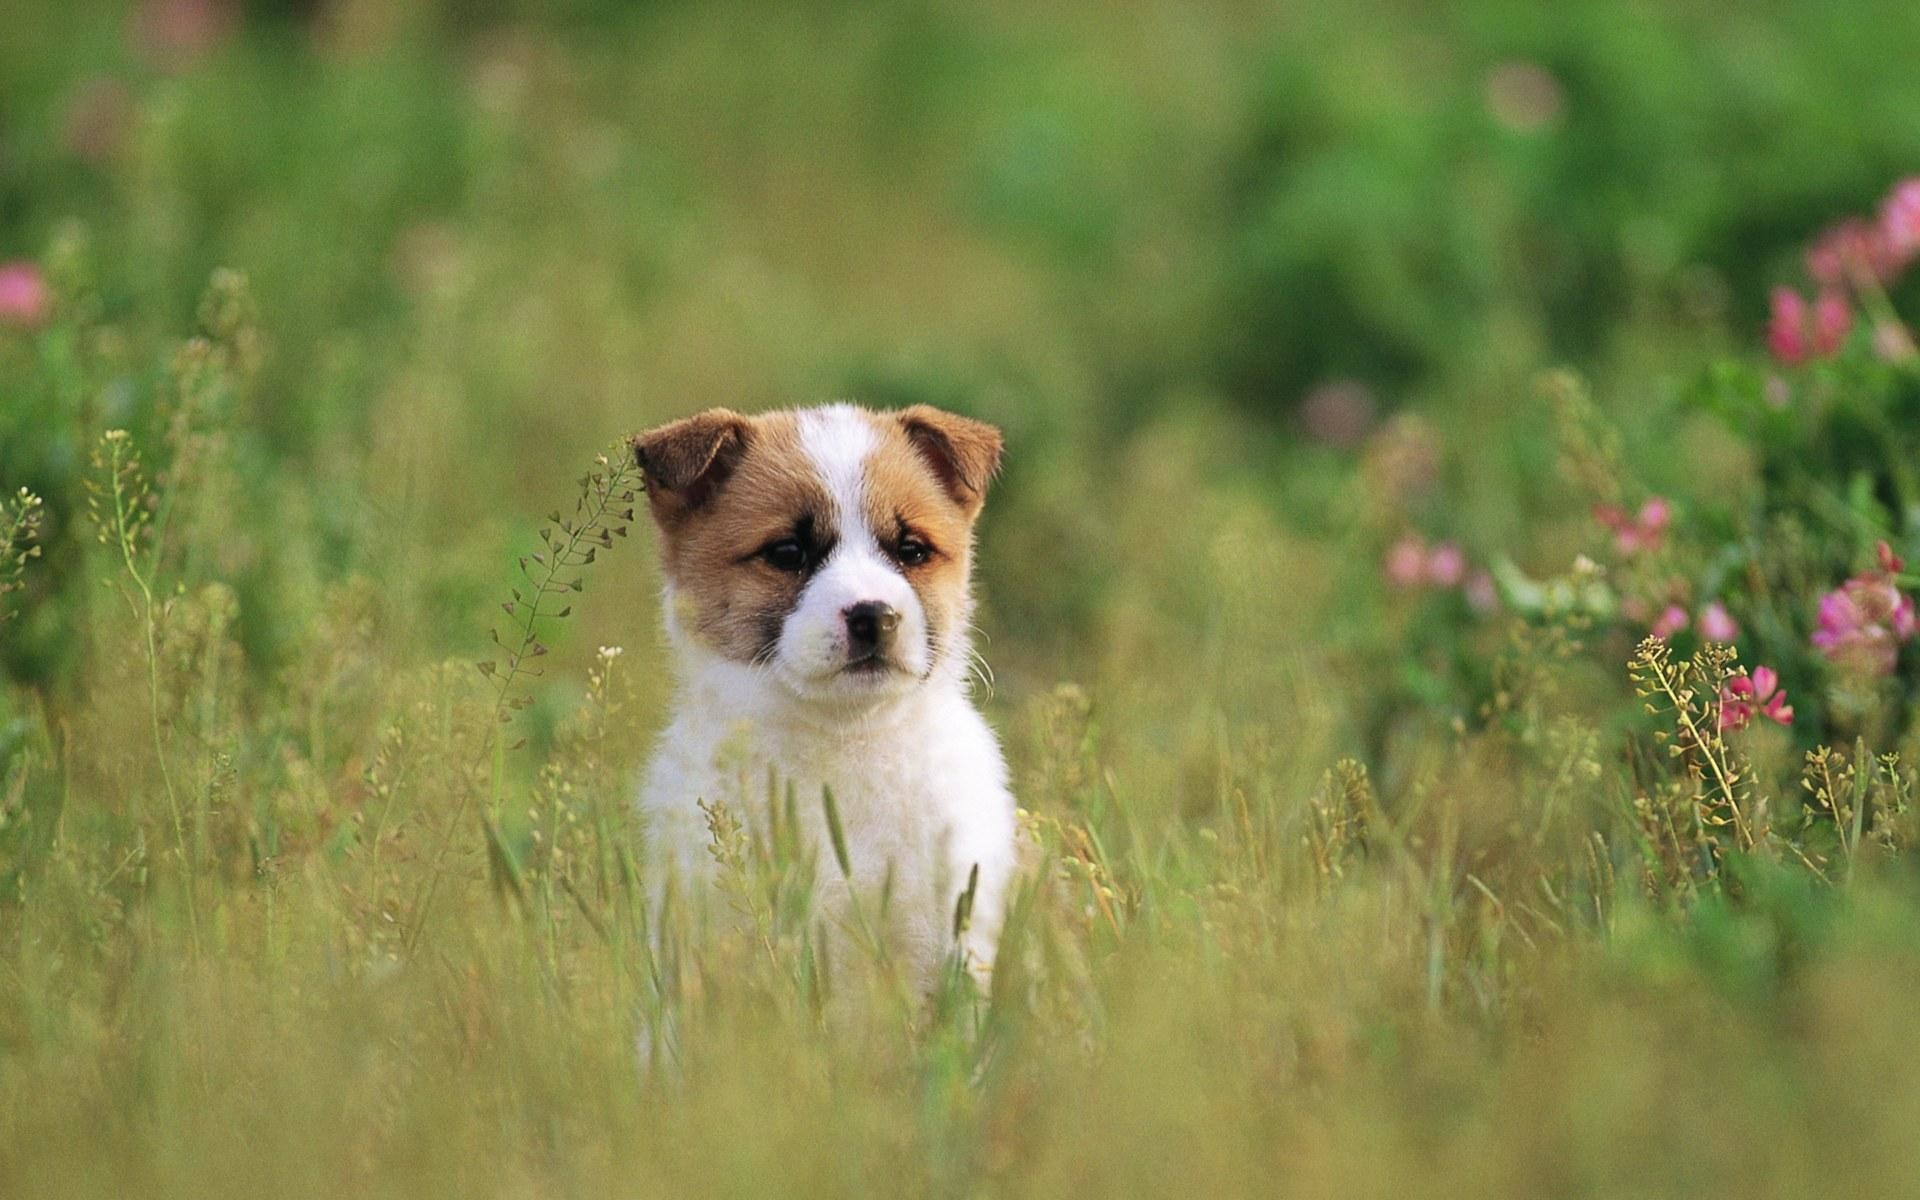 Baby Dogs Wallpapers 54 Images